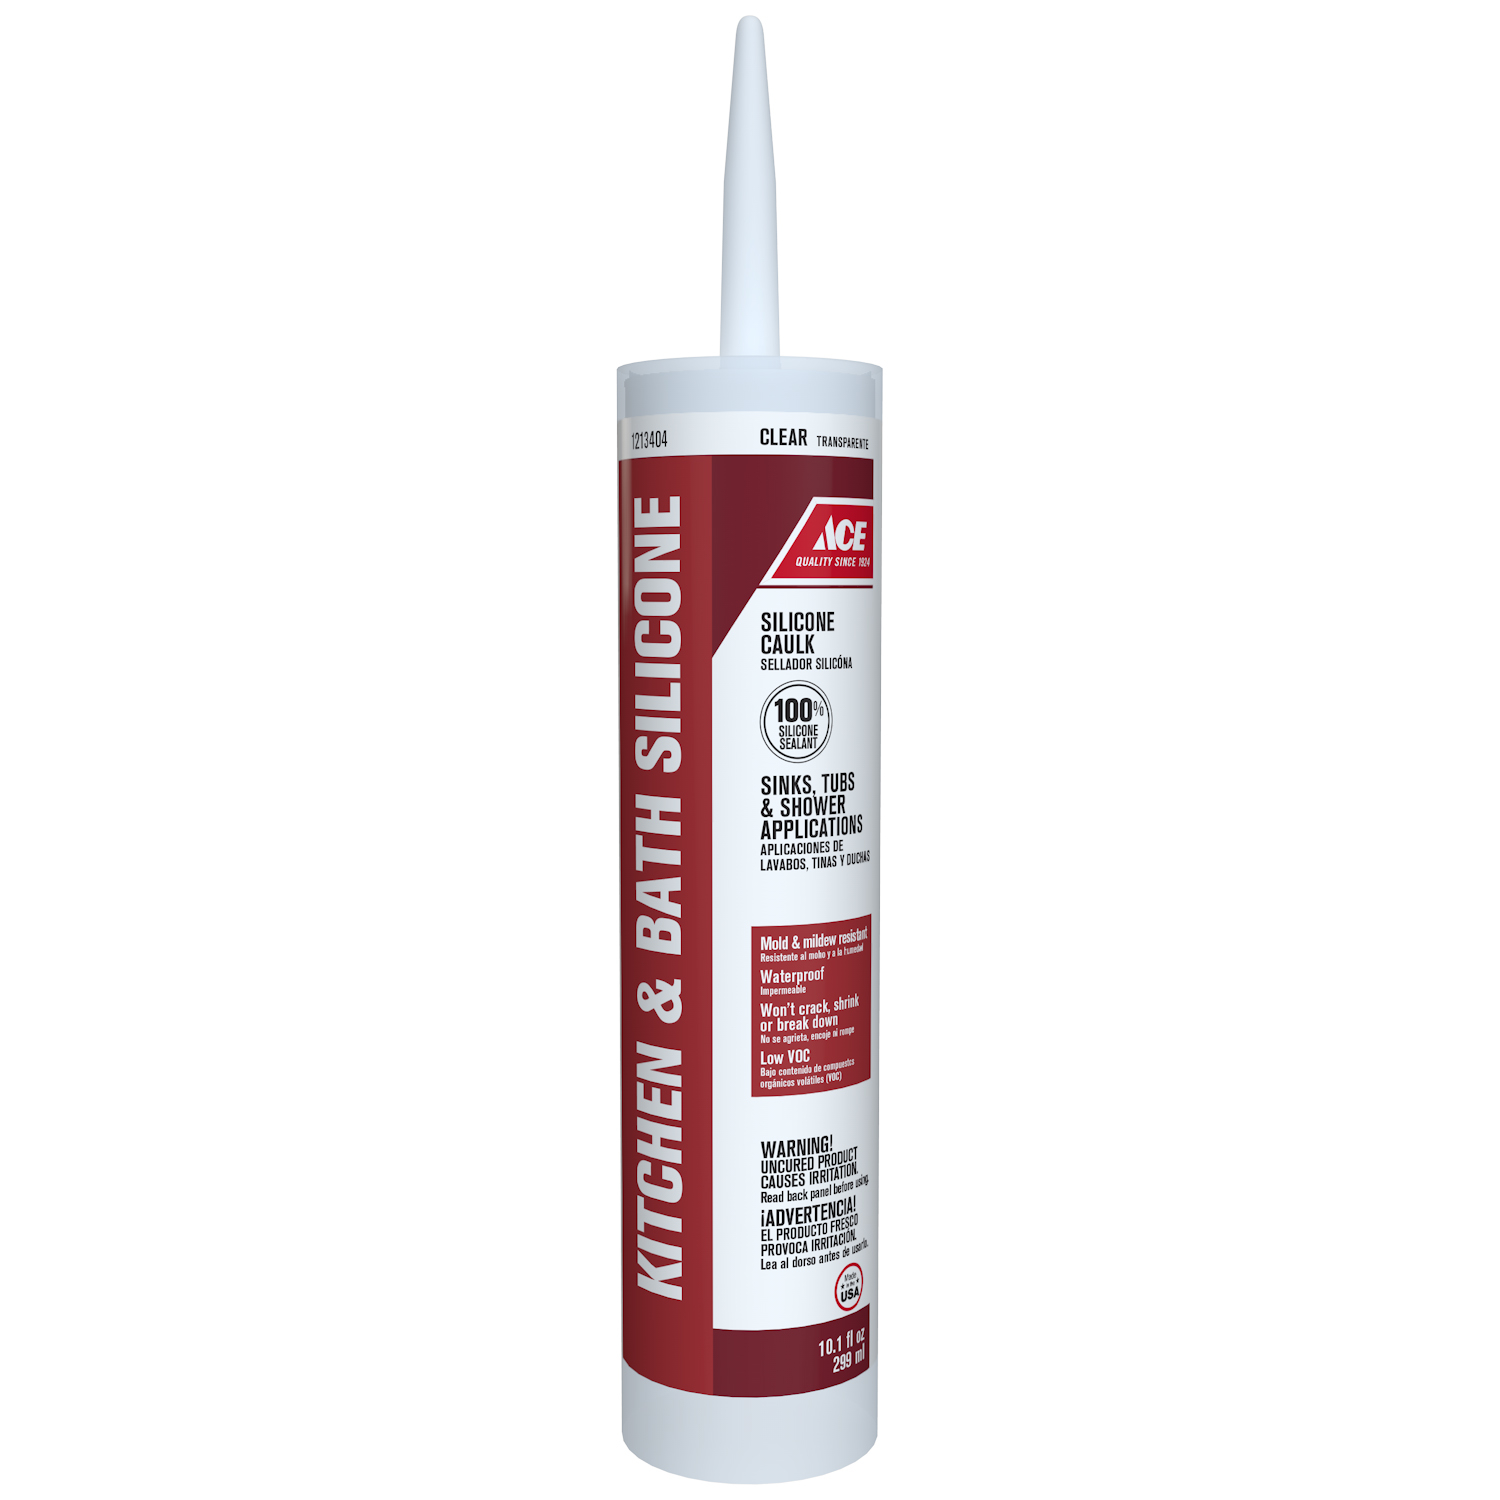 Ace  Silicone  Clear  10.1 oz. Tub & Tile Caulk